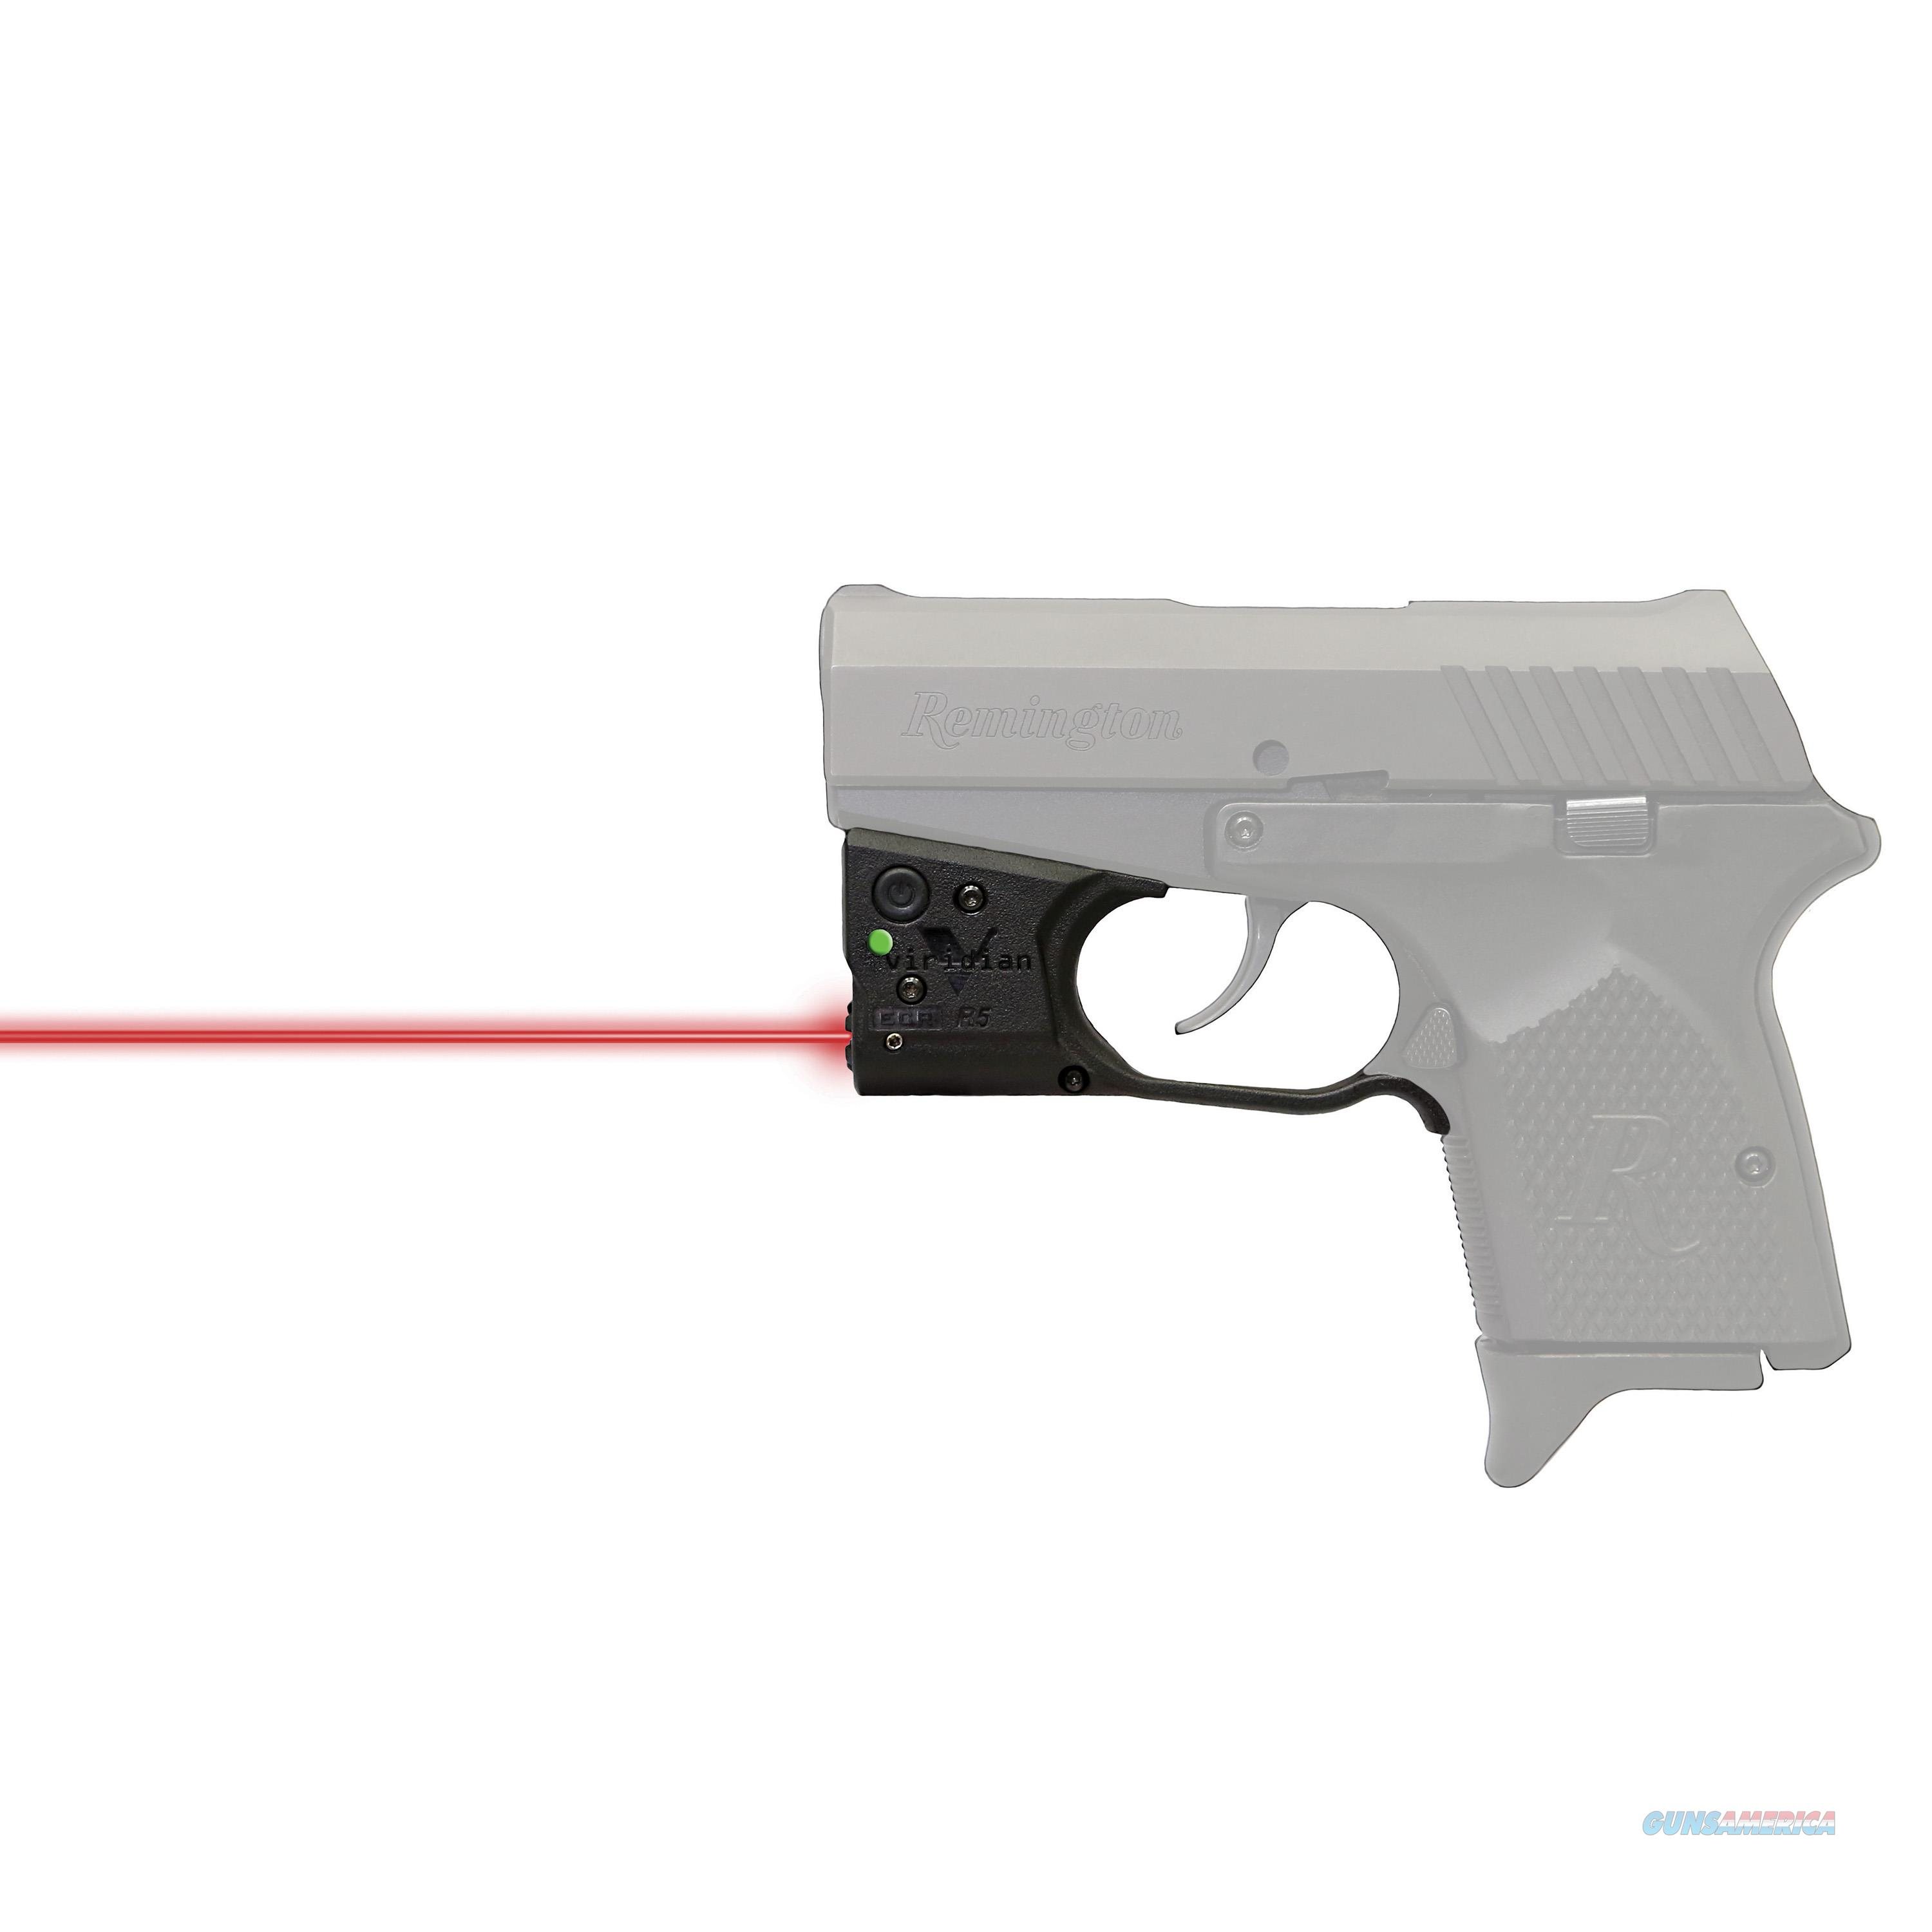 Viridian Green Laser Reactor 5 Gen Ii Red Laser 920-0040  Non-Guns > Iron/Metal/Peep Sights